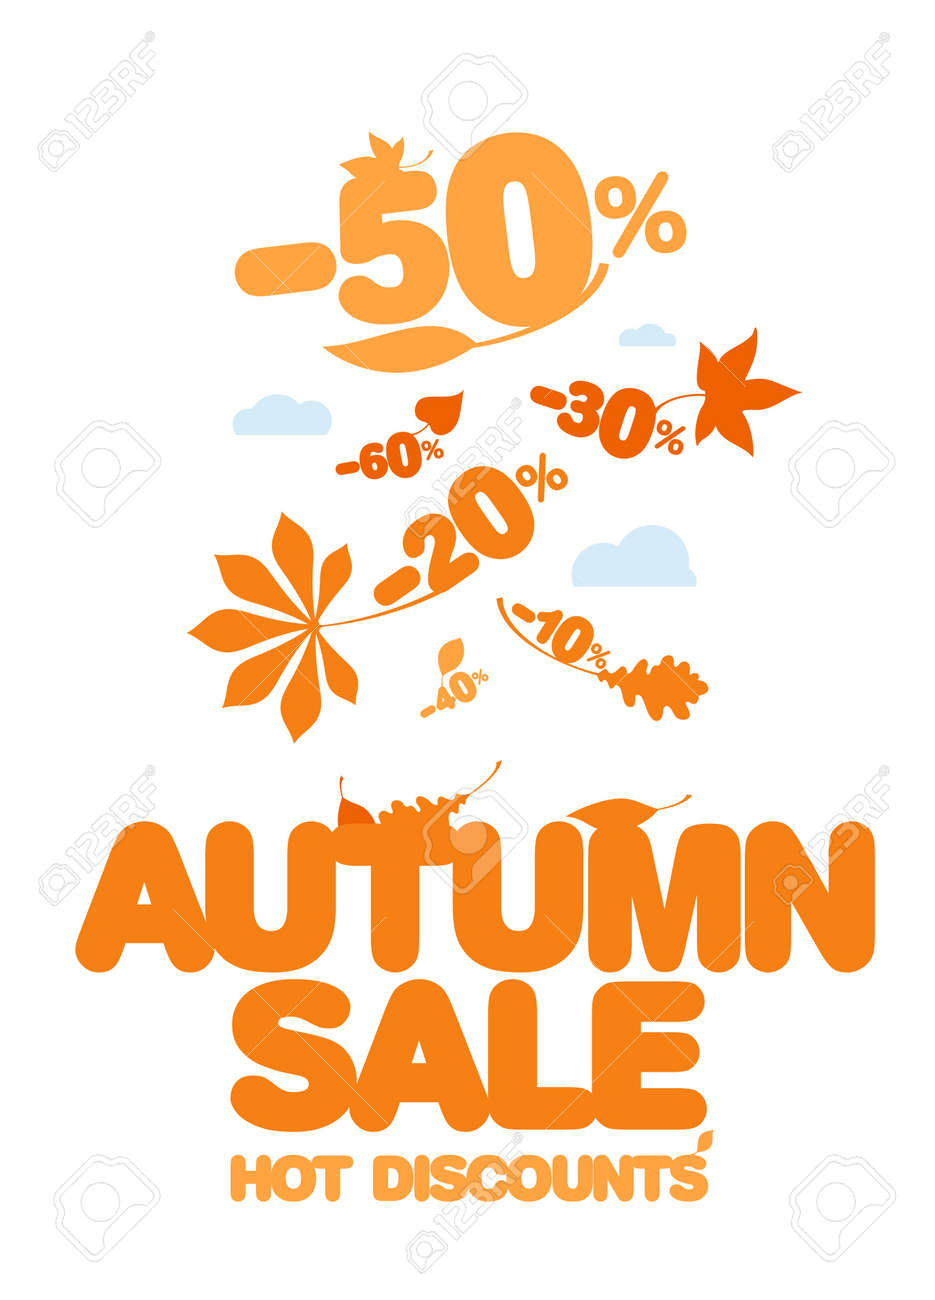 autumn design template hot discounts royalty cliparts autumn design template hot discounts stock vector 15311981